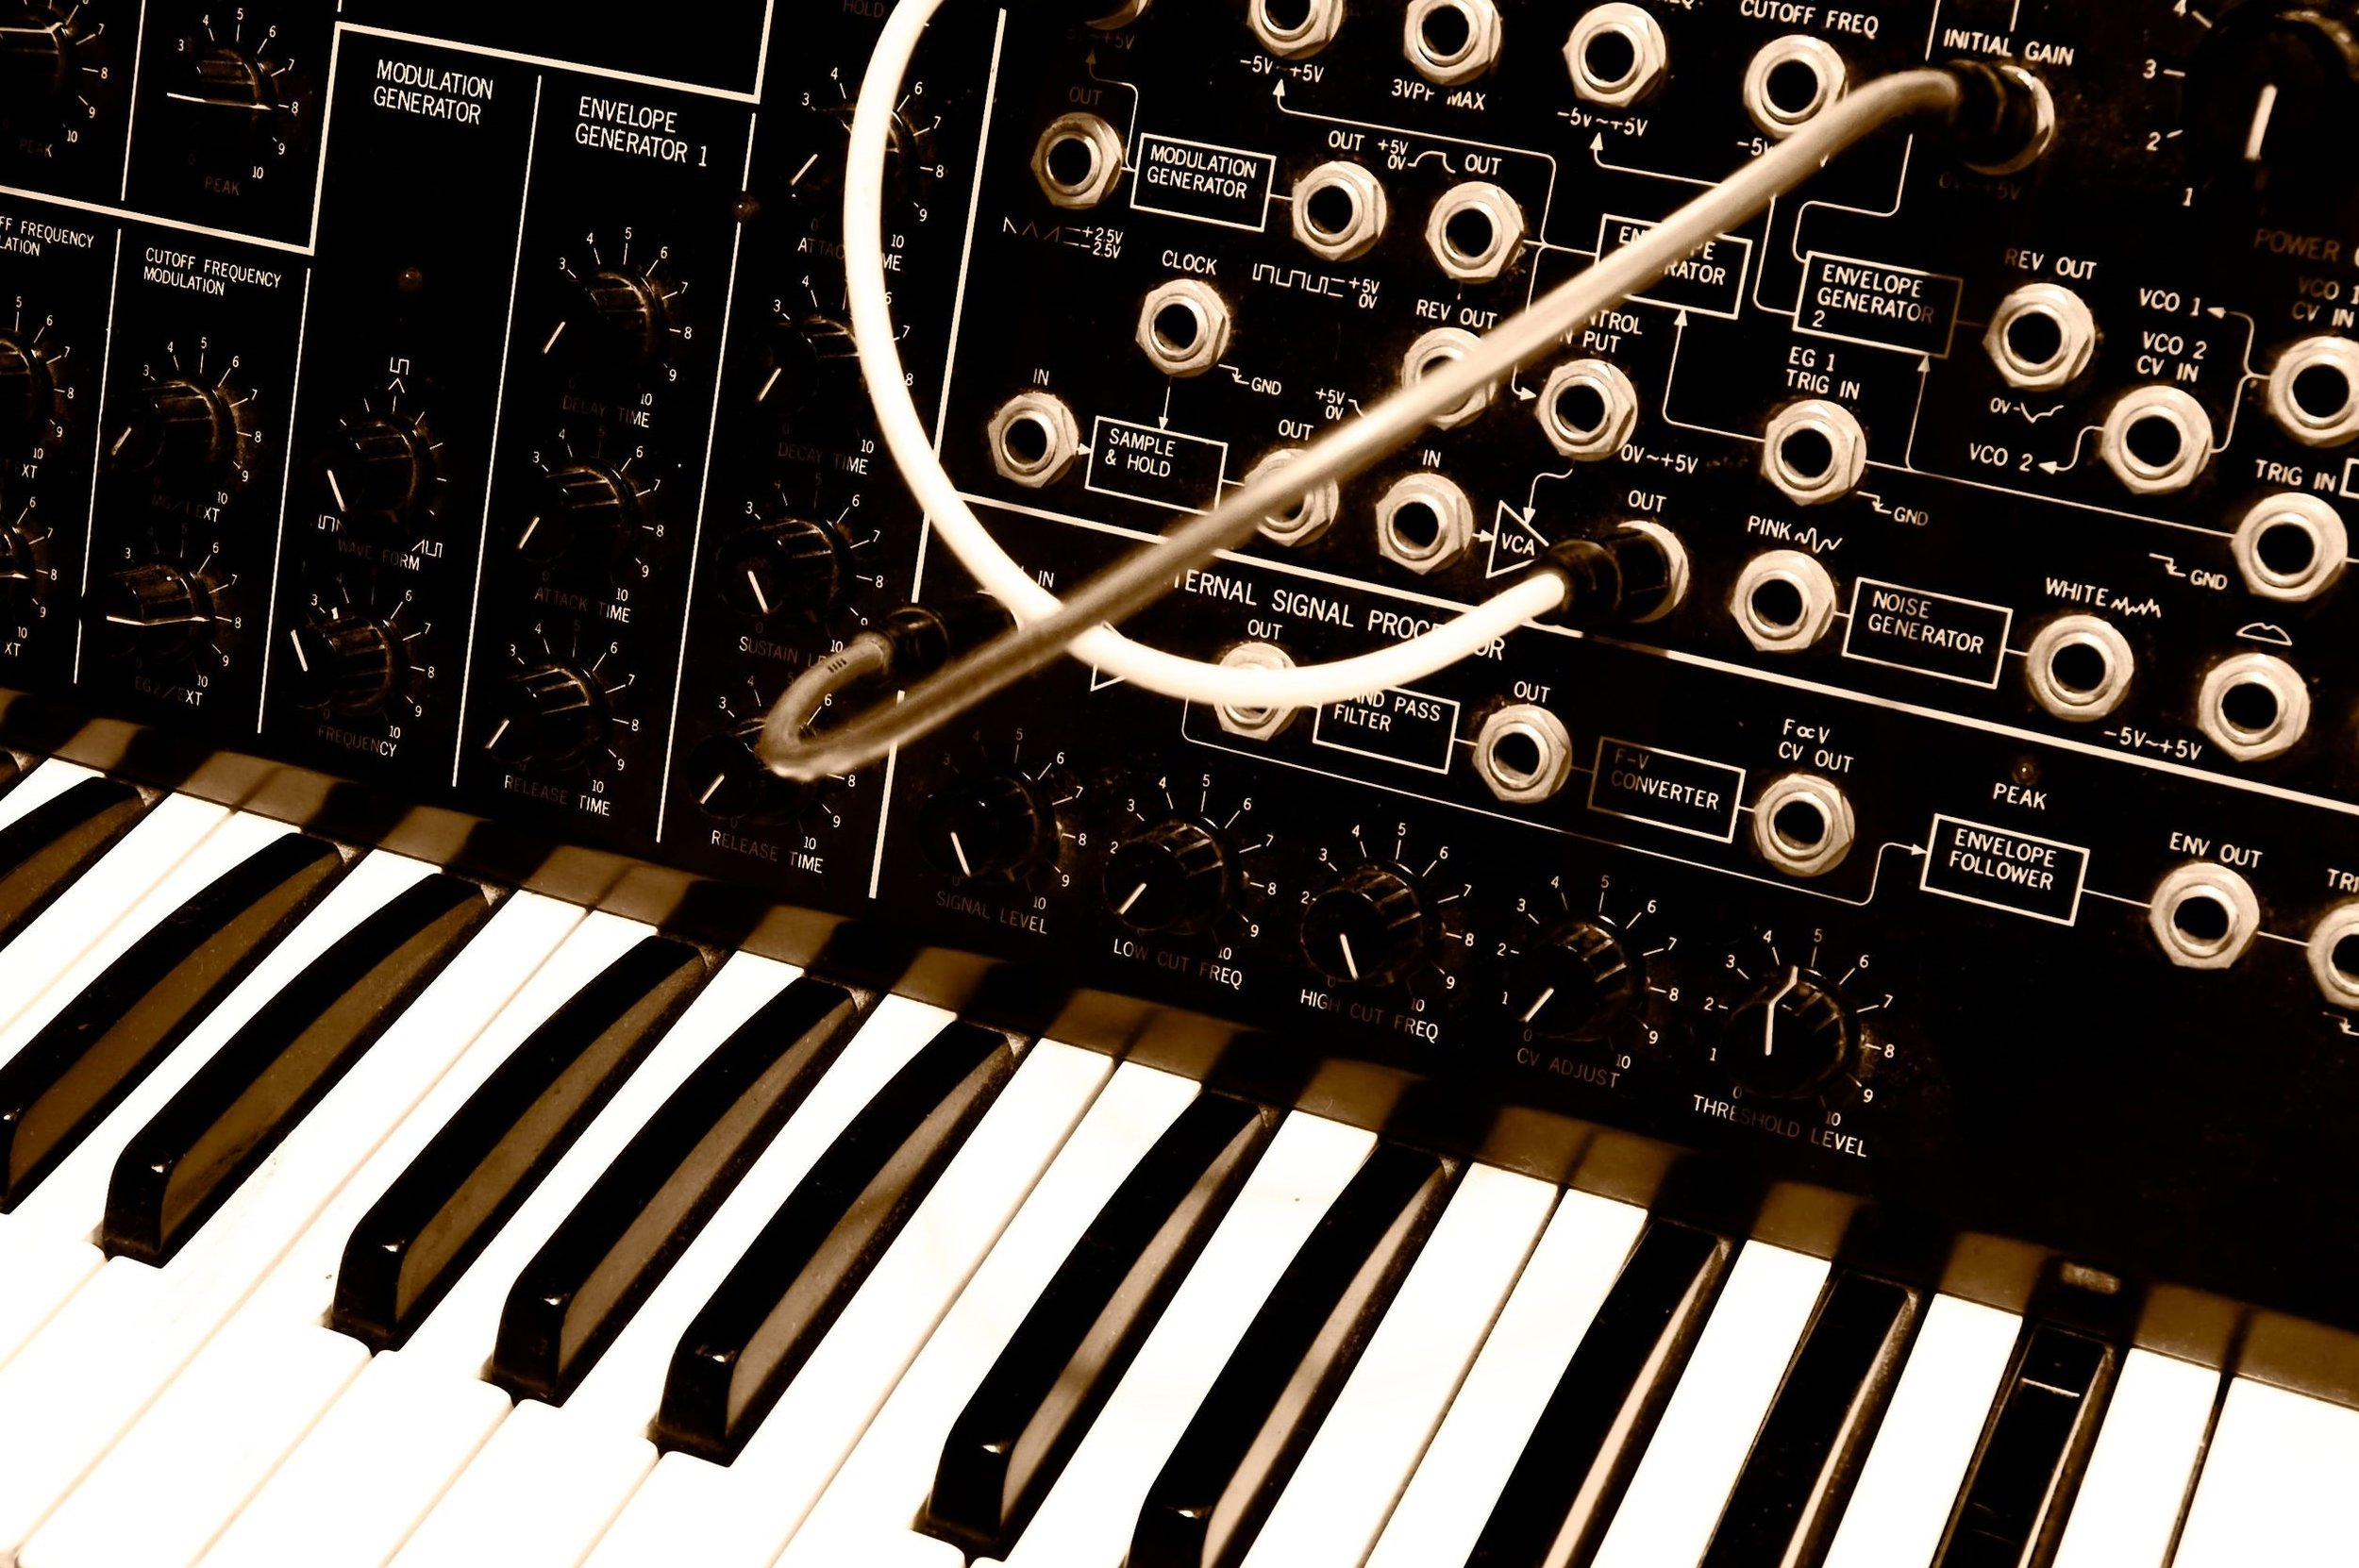 Most synths, like to Korg MS-20 above,use a piano-style keybed as an input mechanism. The Vindor ES1 uses the rising and falling of the player's breath to measure attack, decay, sustain, and release.